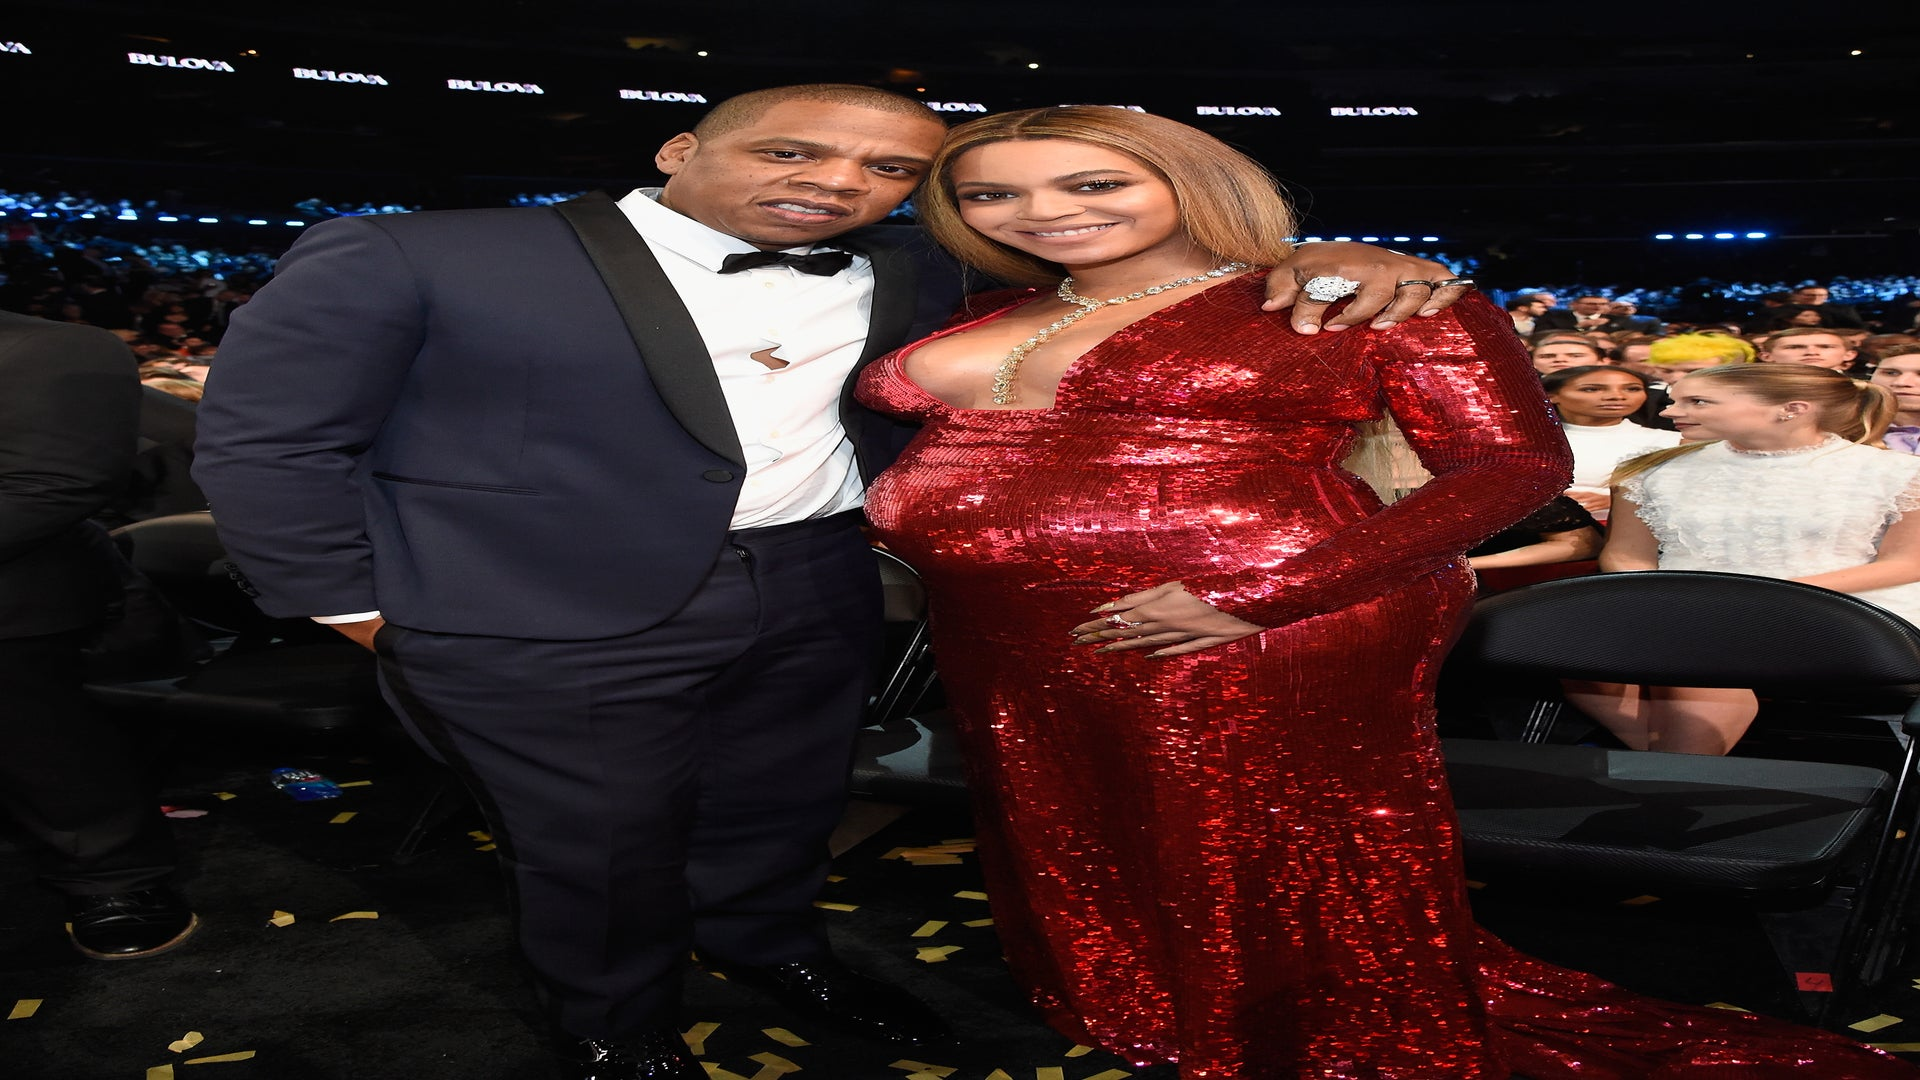 Beyoncé Changes Into Ravishing Red Gown At The Grammys And it Was Epic, Obvi